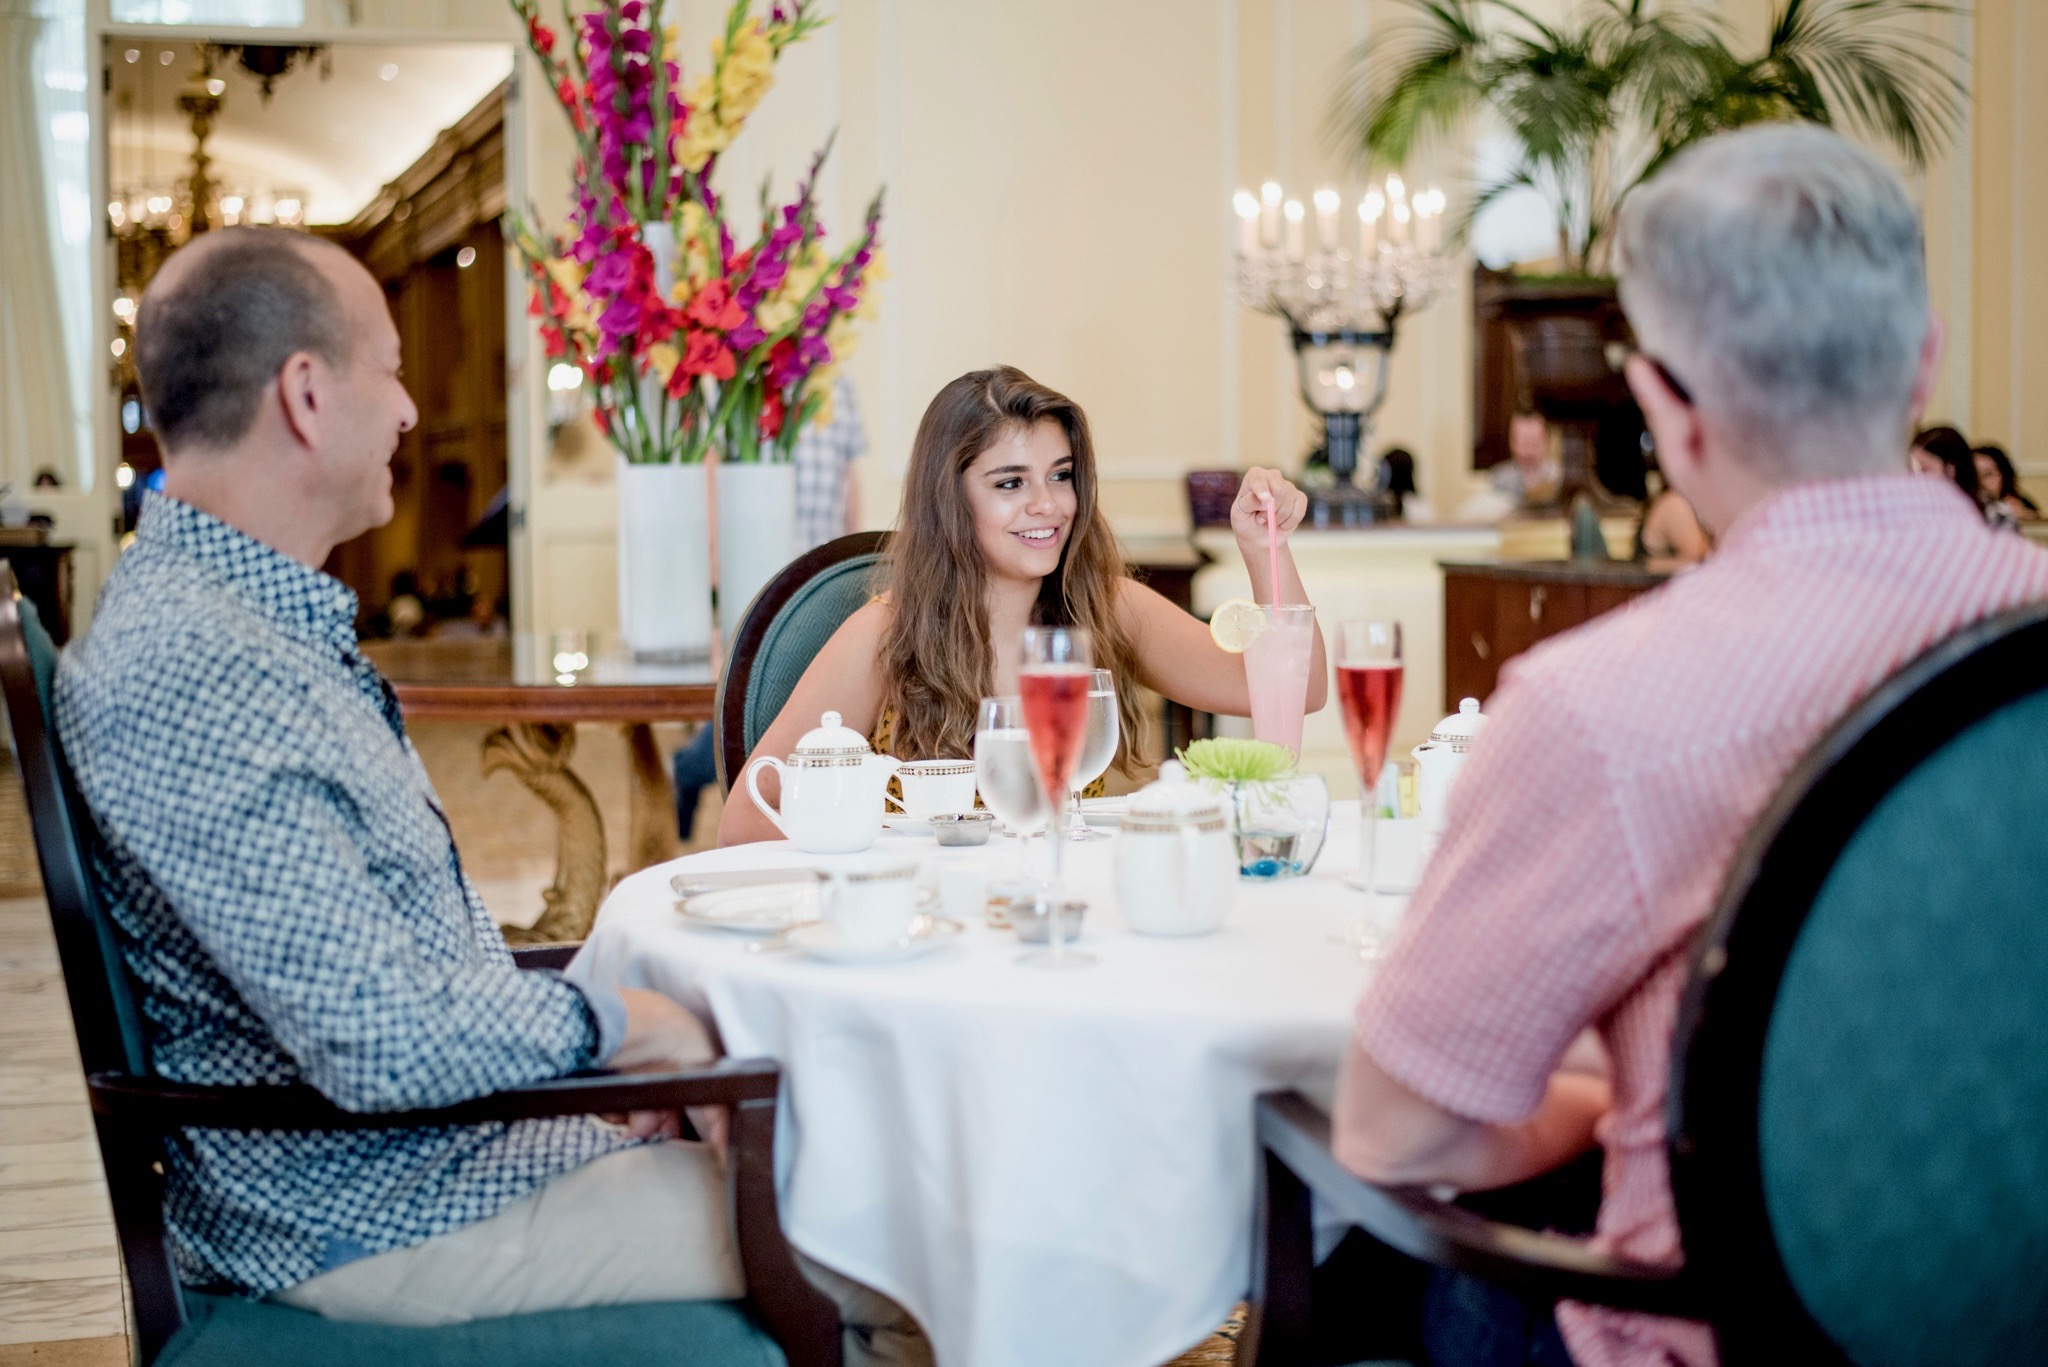 Family enjoys High Tea served at The Georgian Restaurant in the Fairmont Olympic Hotel in Seattle, WA